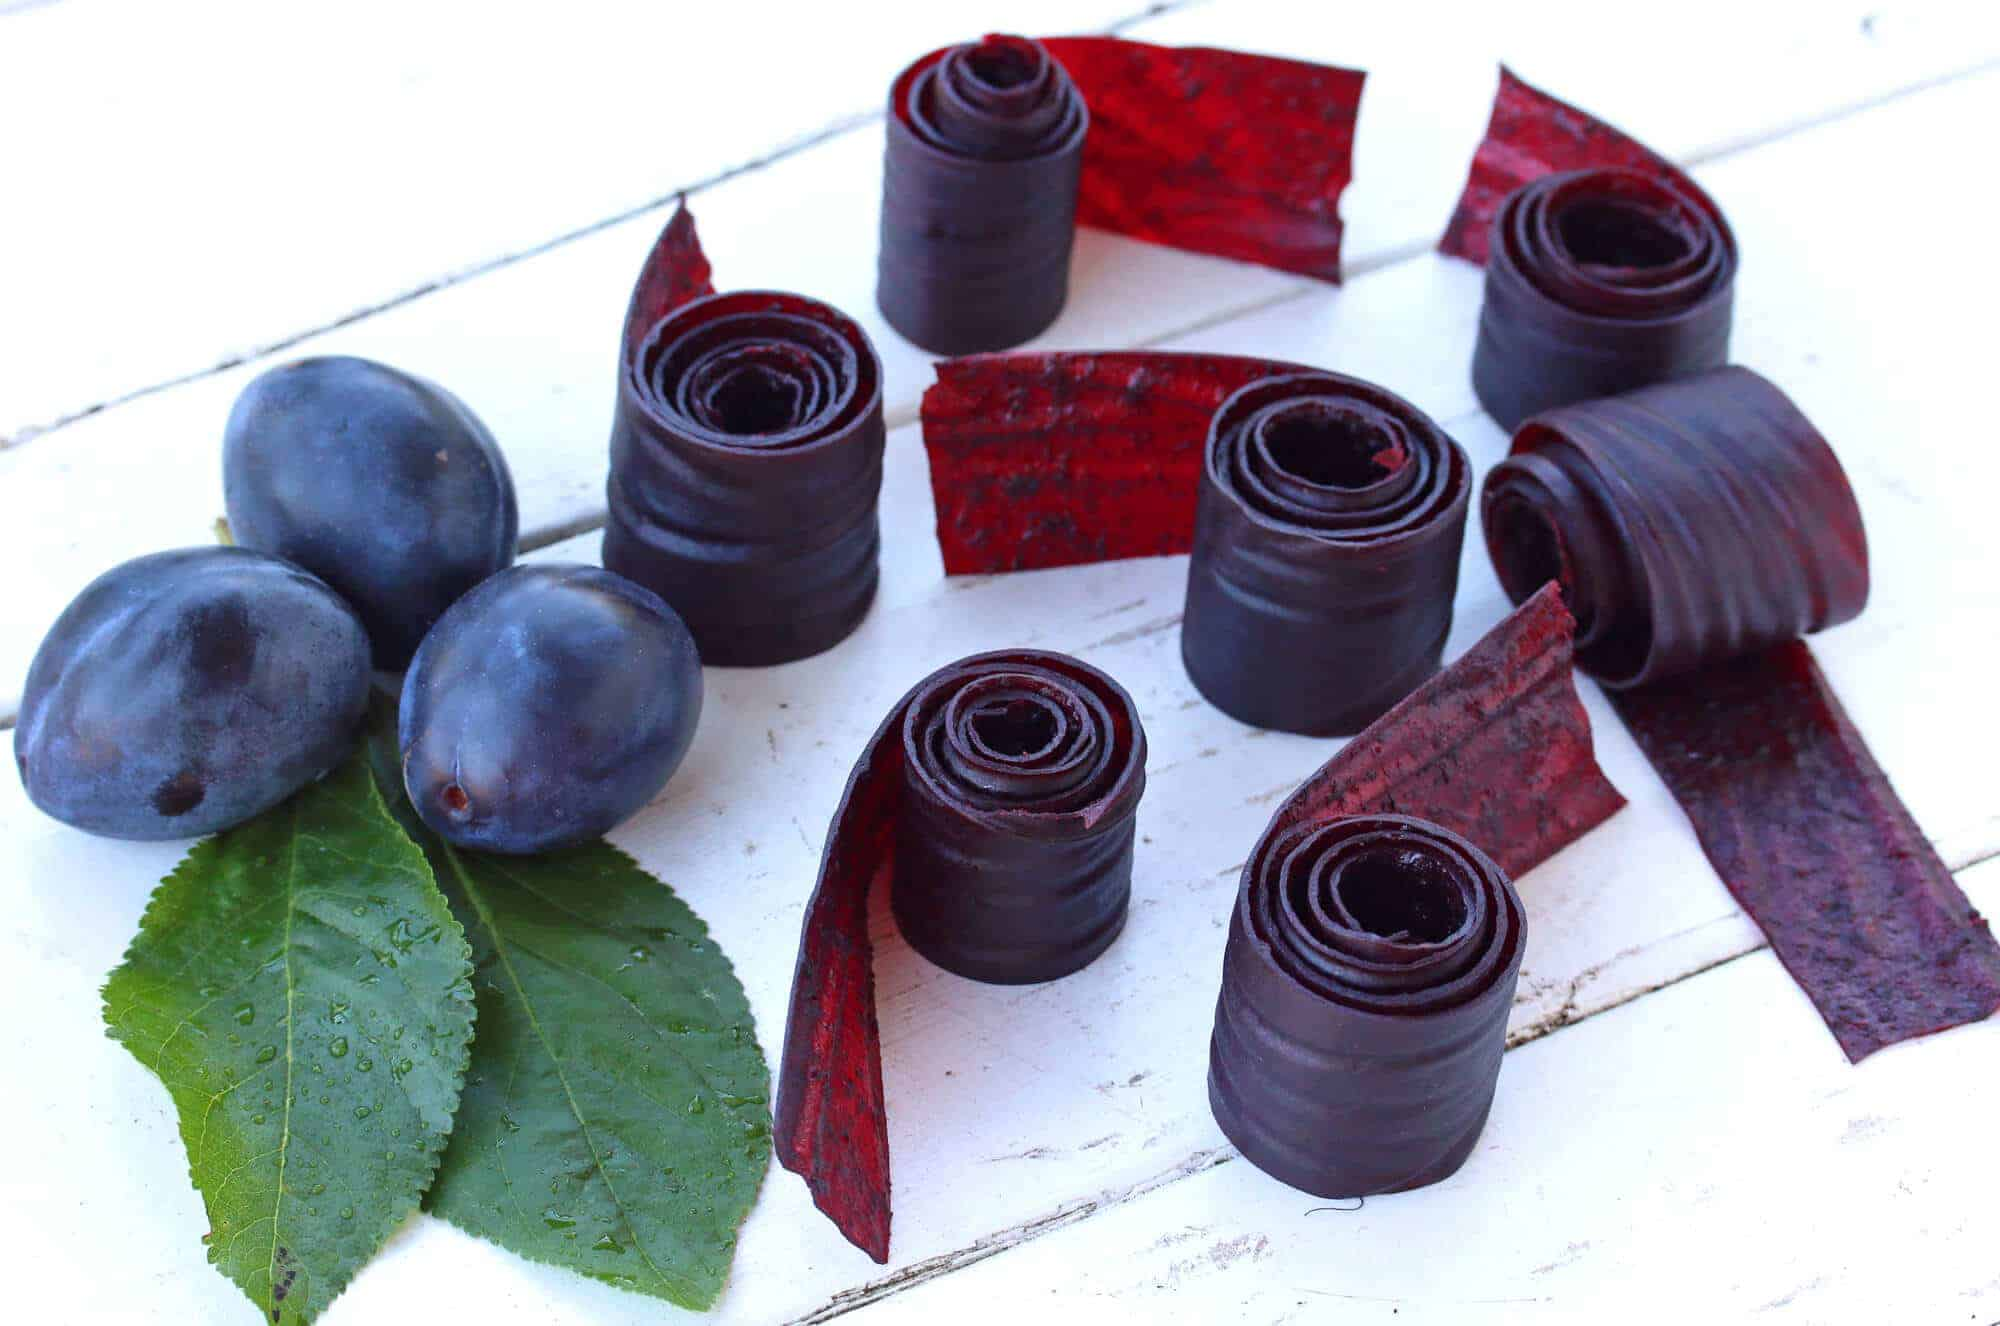 How To Make Fruit Leather - The Daring Gourmet